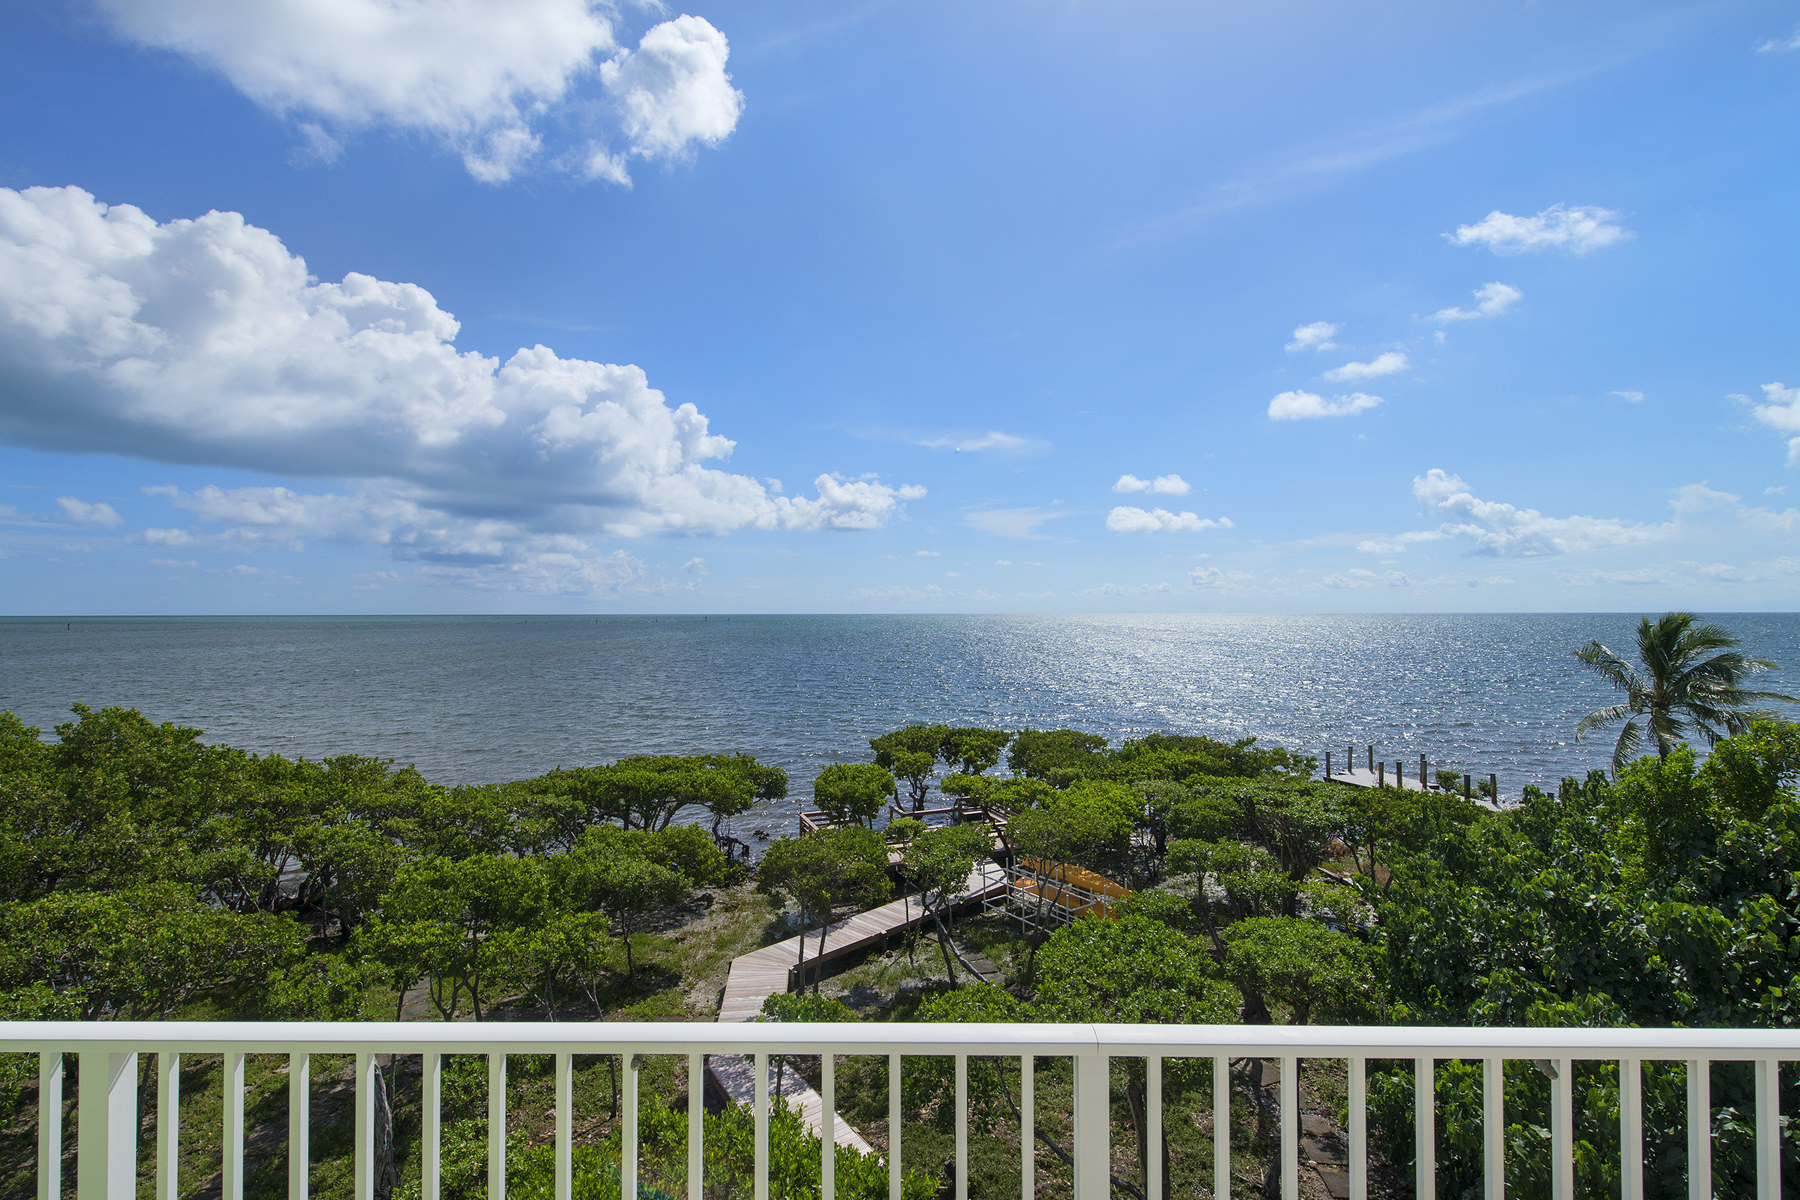 一戸建て のために 売買 アット Ocean Front Home at Ocean Reef 15 Sunrise Cay Drive, Ocean Reef Community, Key Largo, フロリダ, 33037 アメリカ合衆国